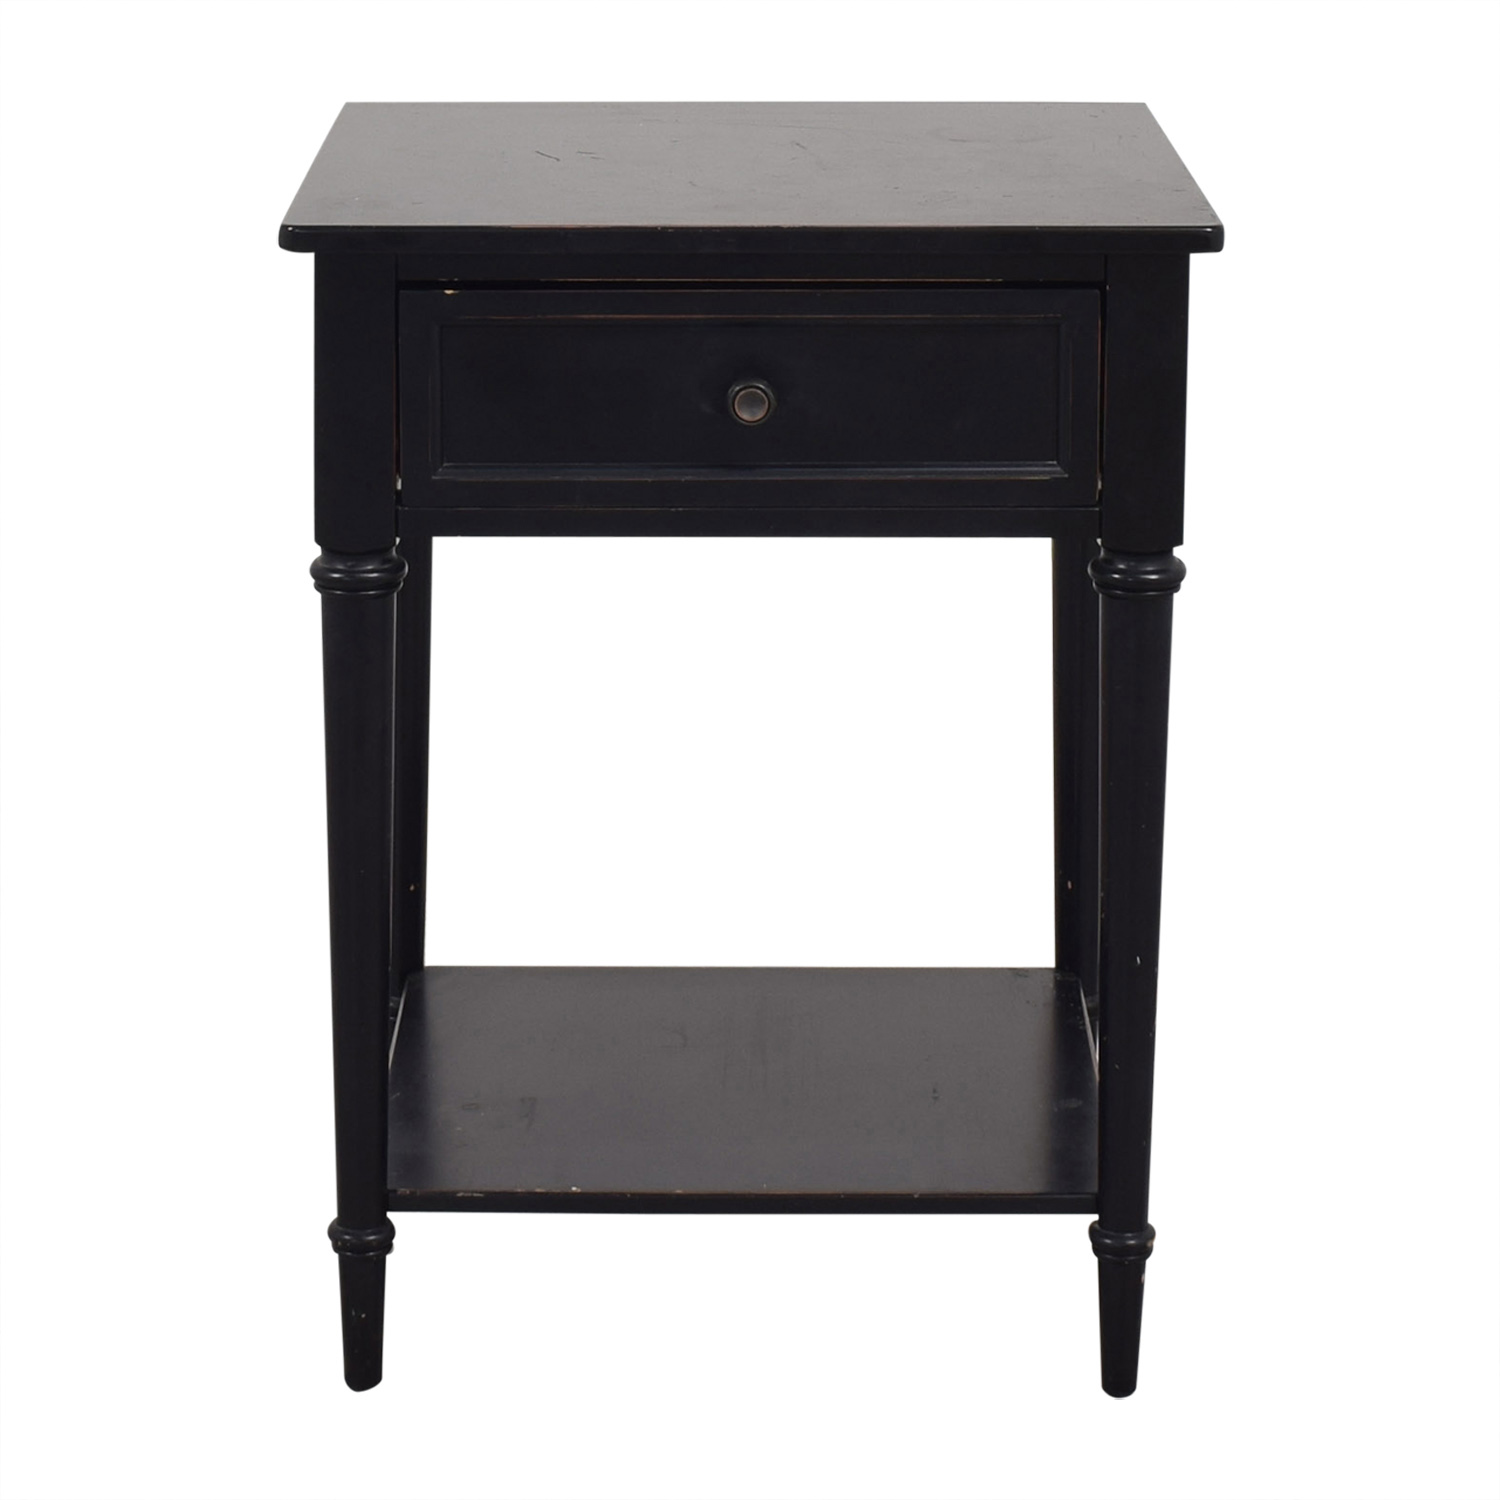 Crate & Barrel Crate & Barrel Black Distressed Night Stand second hand